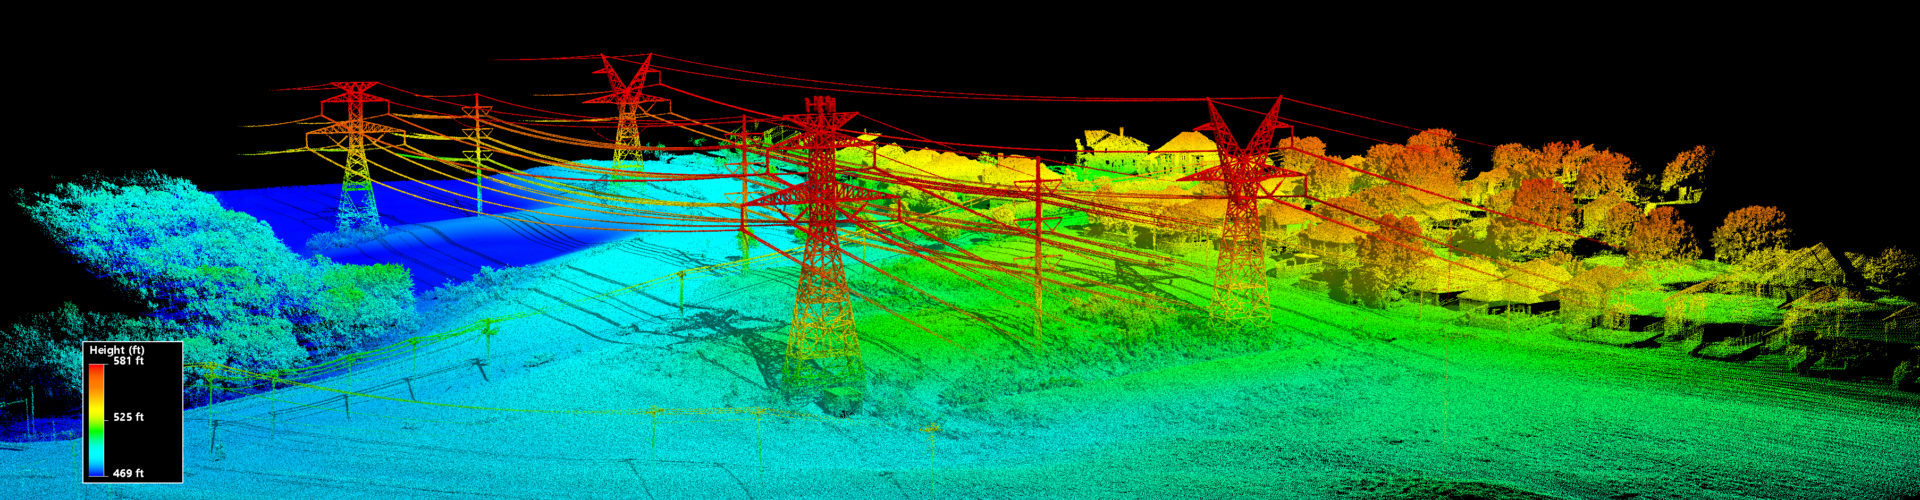 Drone LiDAR Transmission Right-Of-Way